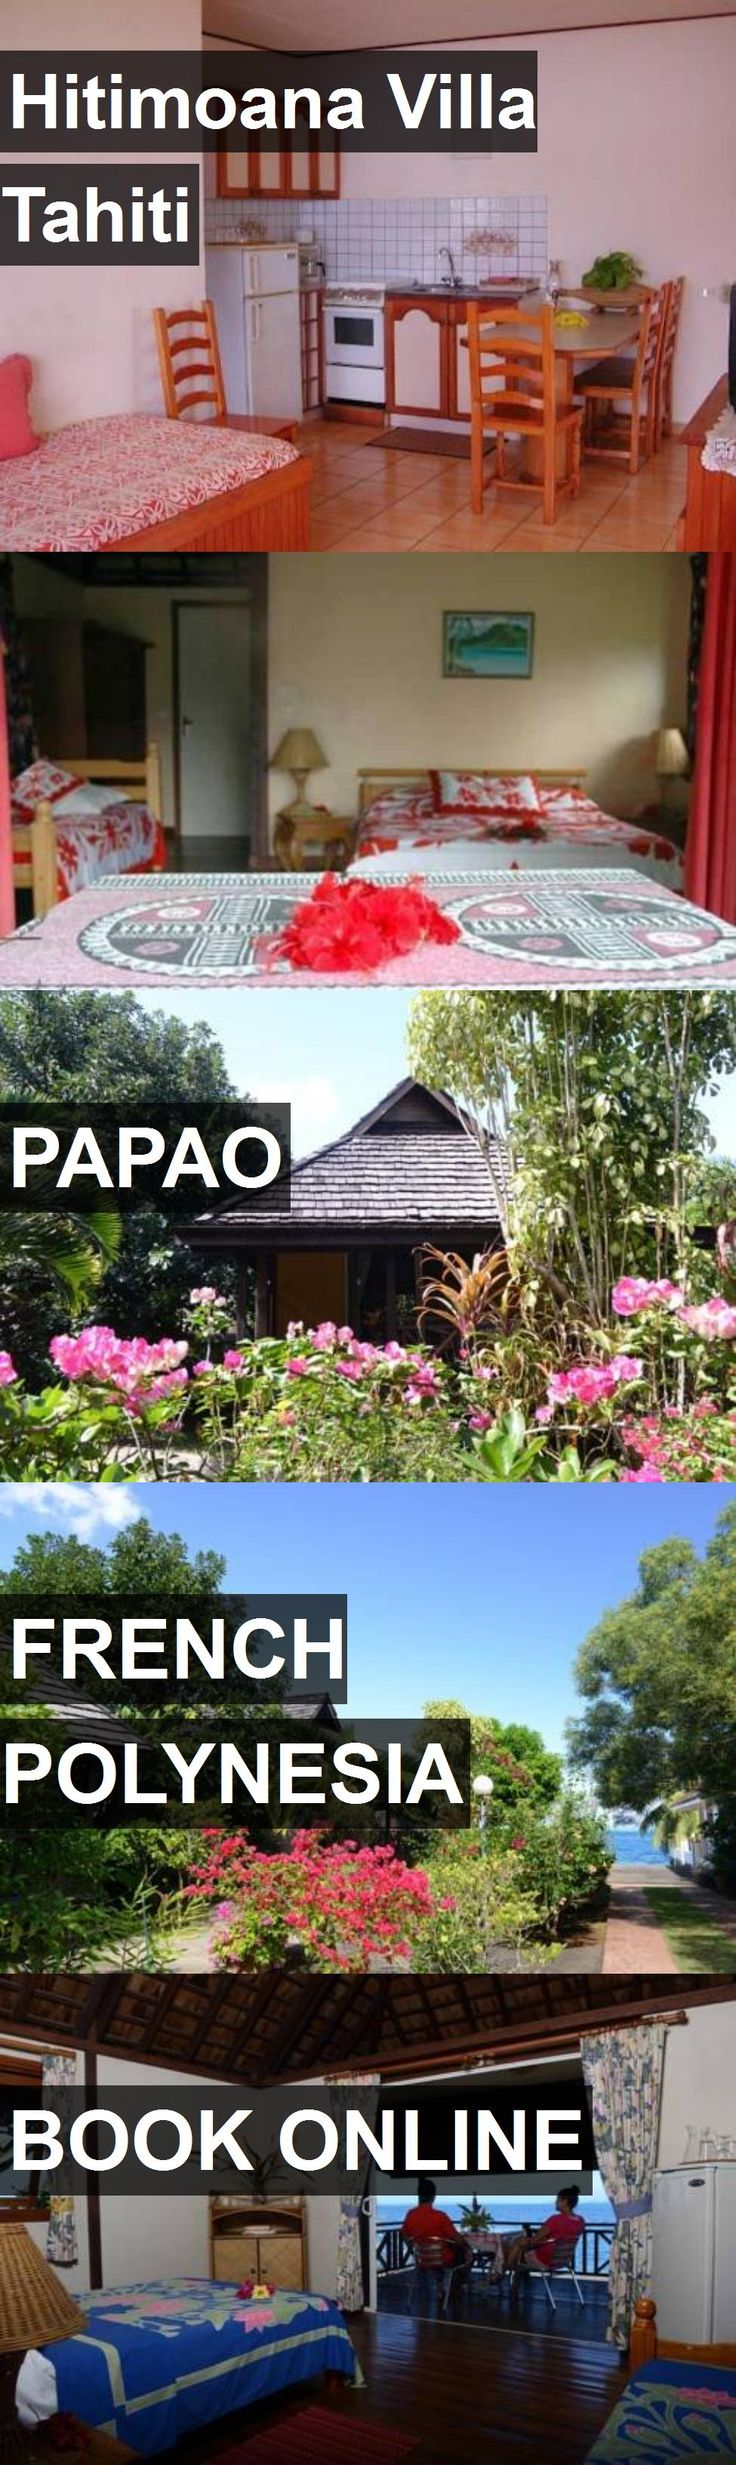 Hotel Hitimoana Villa Tahiti in Papao, French Polynesia. For more information, photos, reviews and best prices please follow the link. #FrenchPolynesia #Papao #travel #vacation #hotel